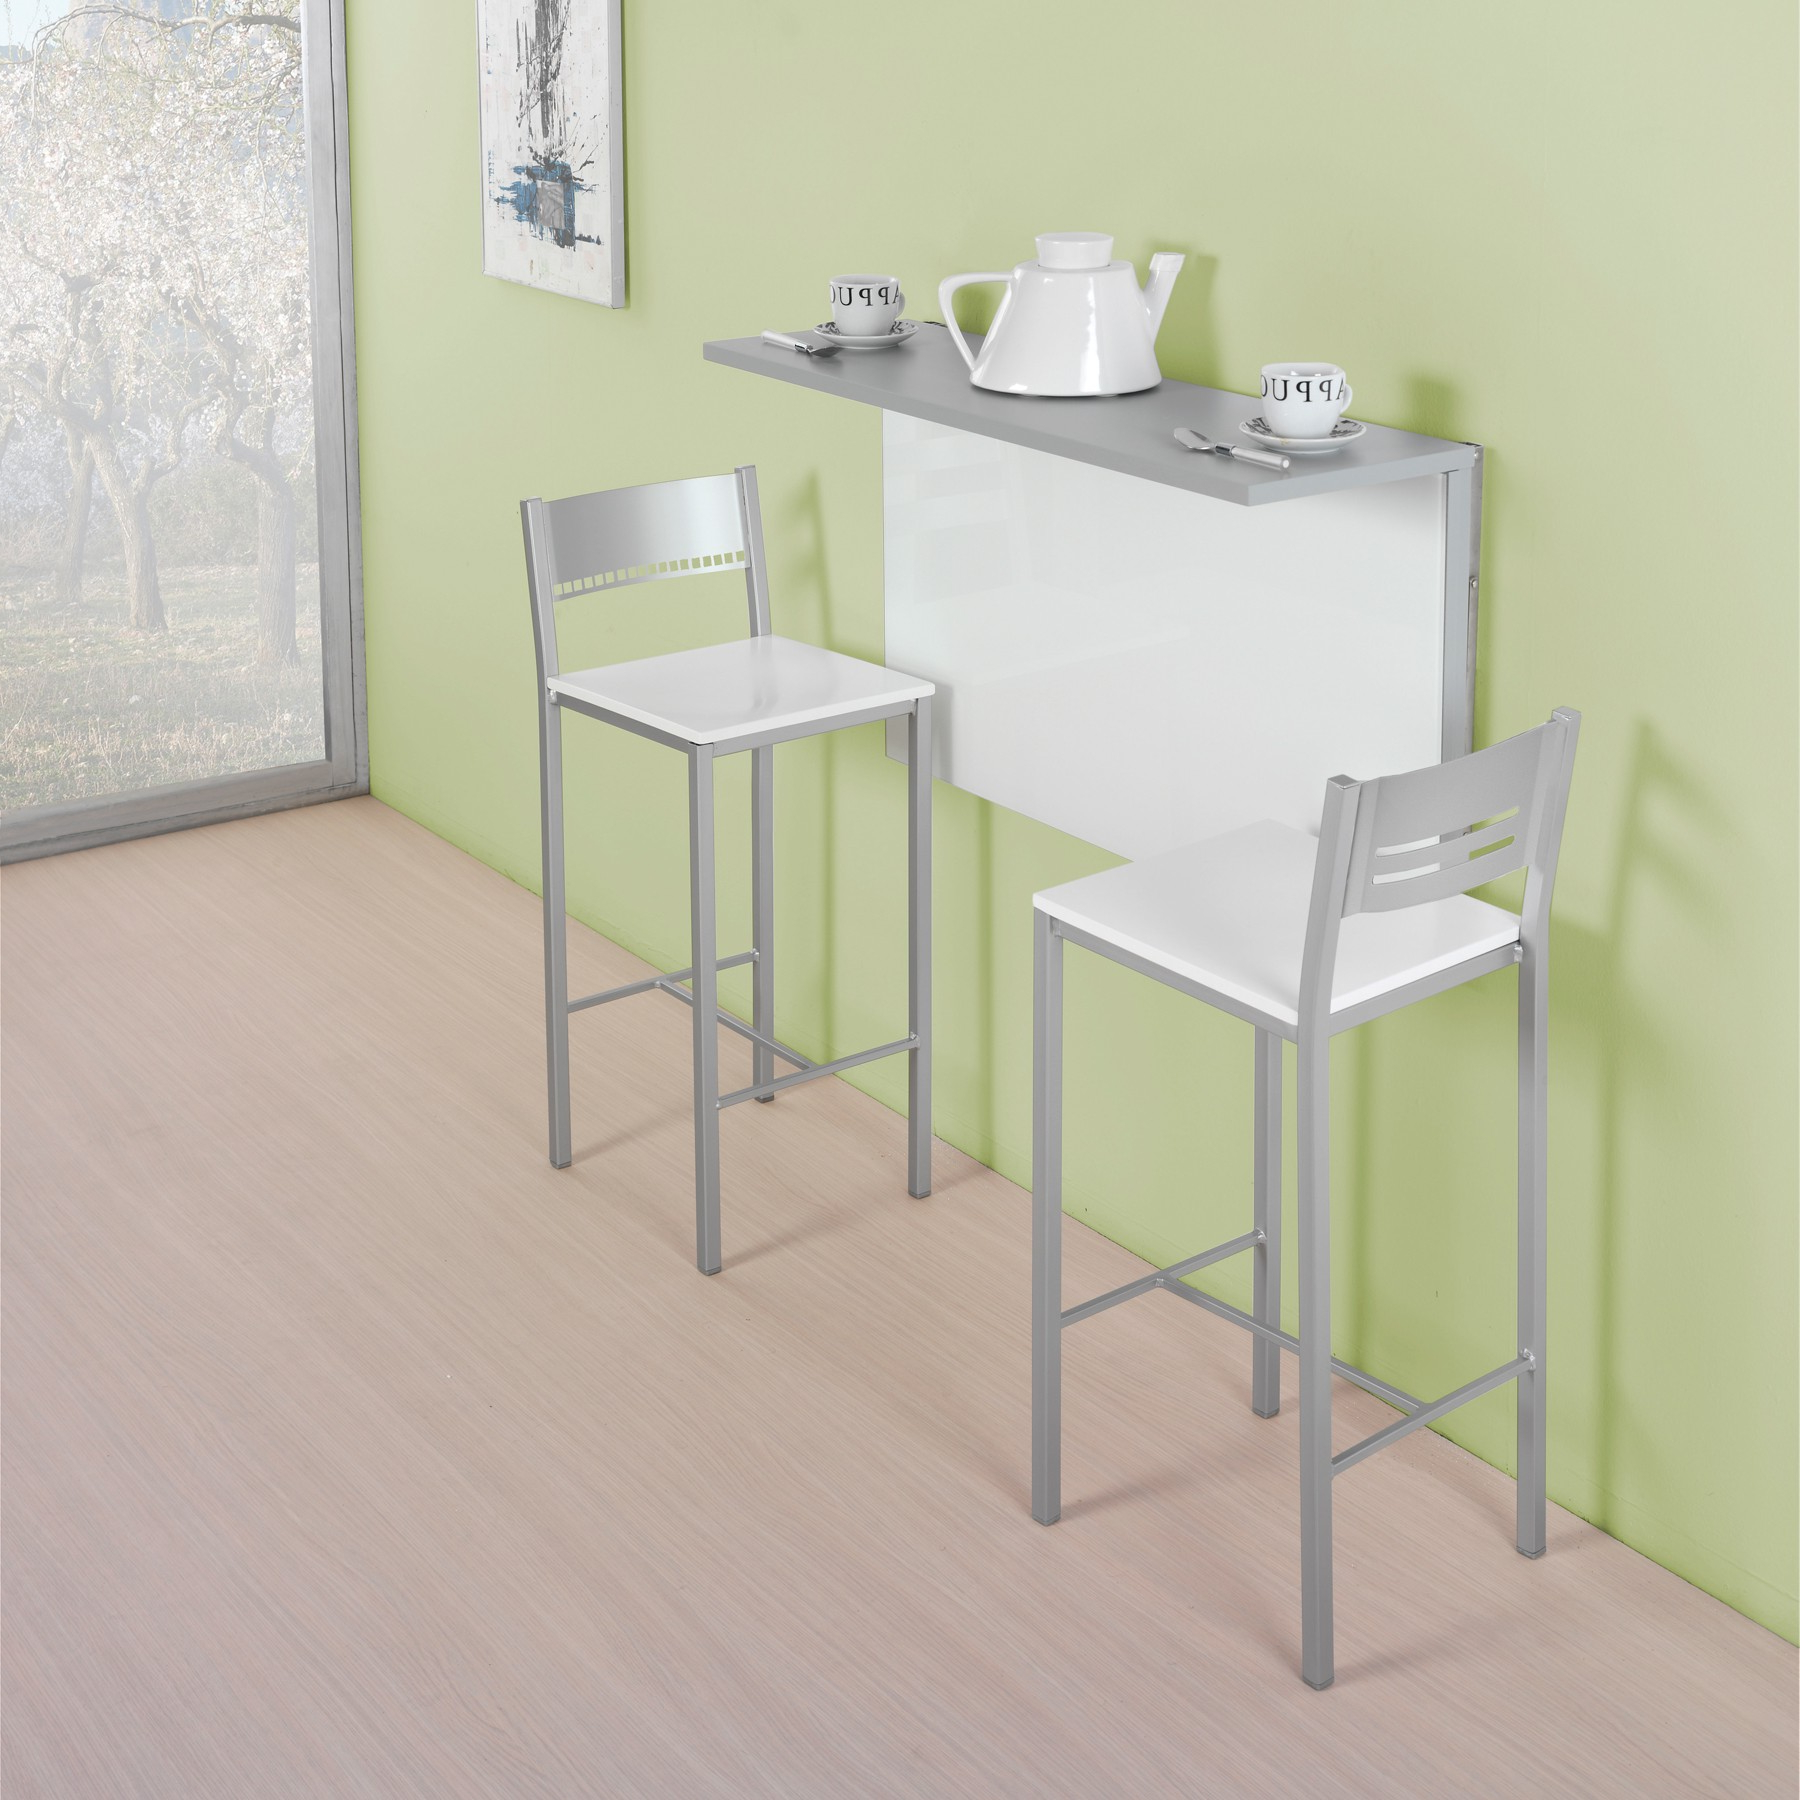 Mesa Plegable Pared Cocina J7do Mesa Plegable De Pared Para Cocina Y ...